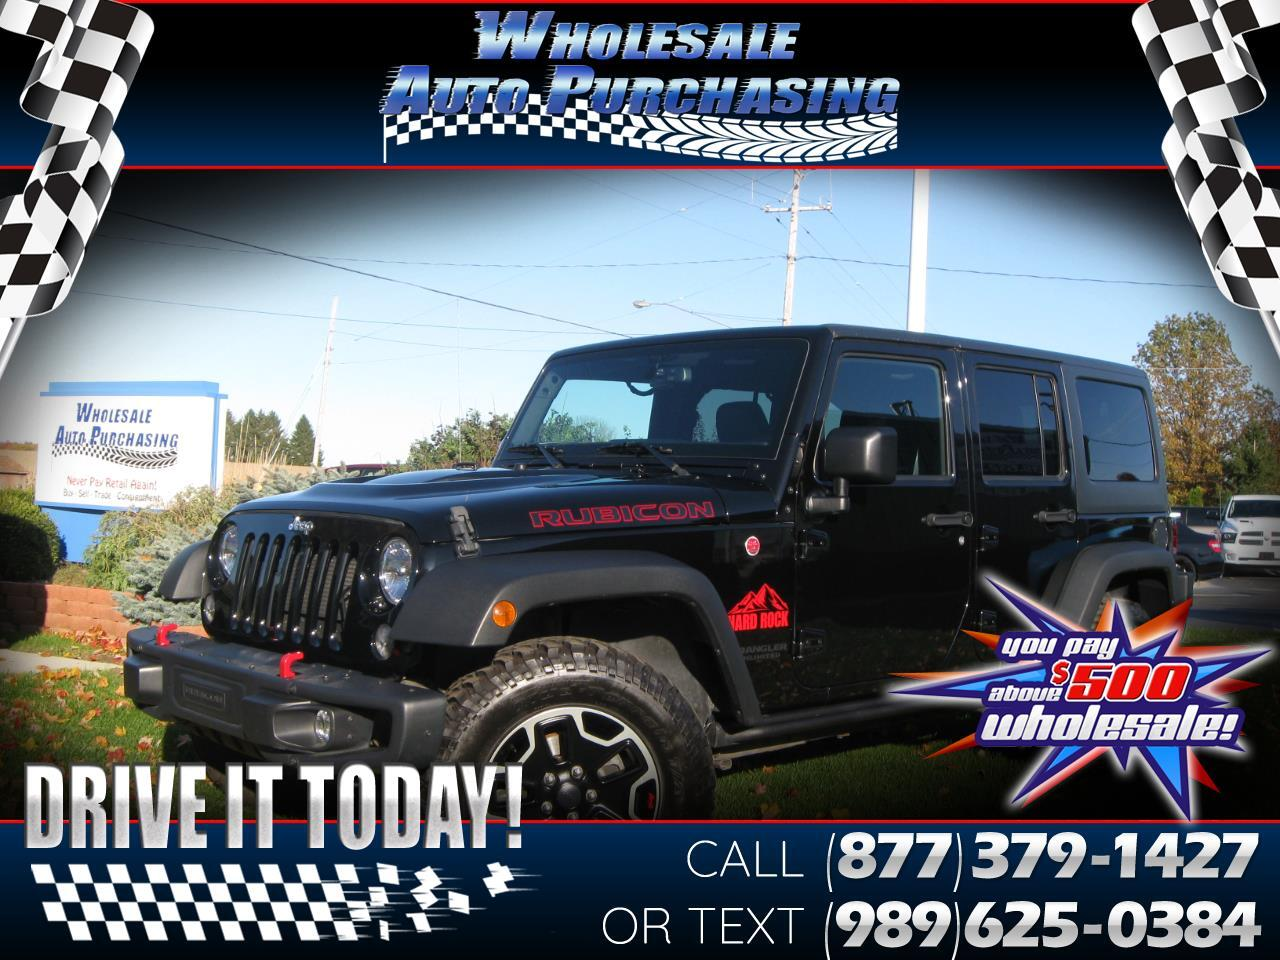 2017 Jeep Wrangler Unlimited 4WD 4dr Rubicon Hard Rock *Ltd Avail*